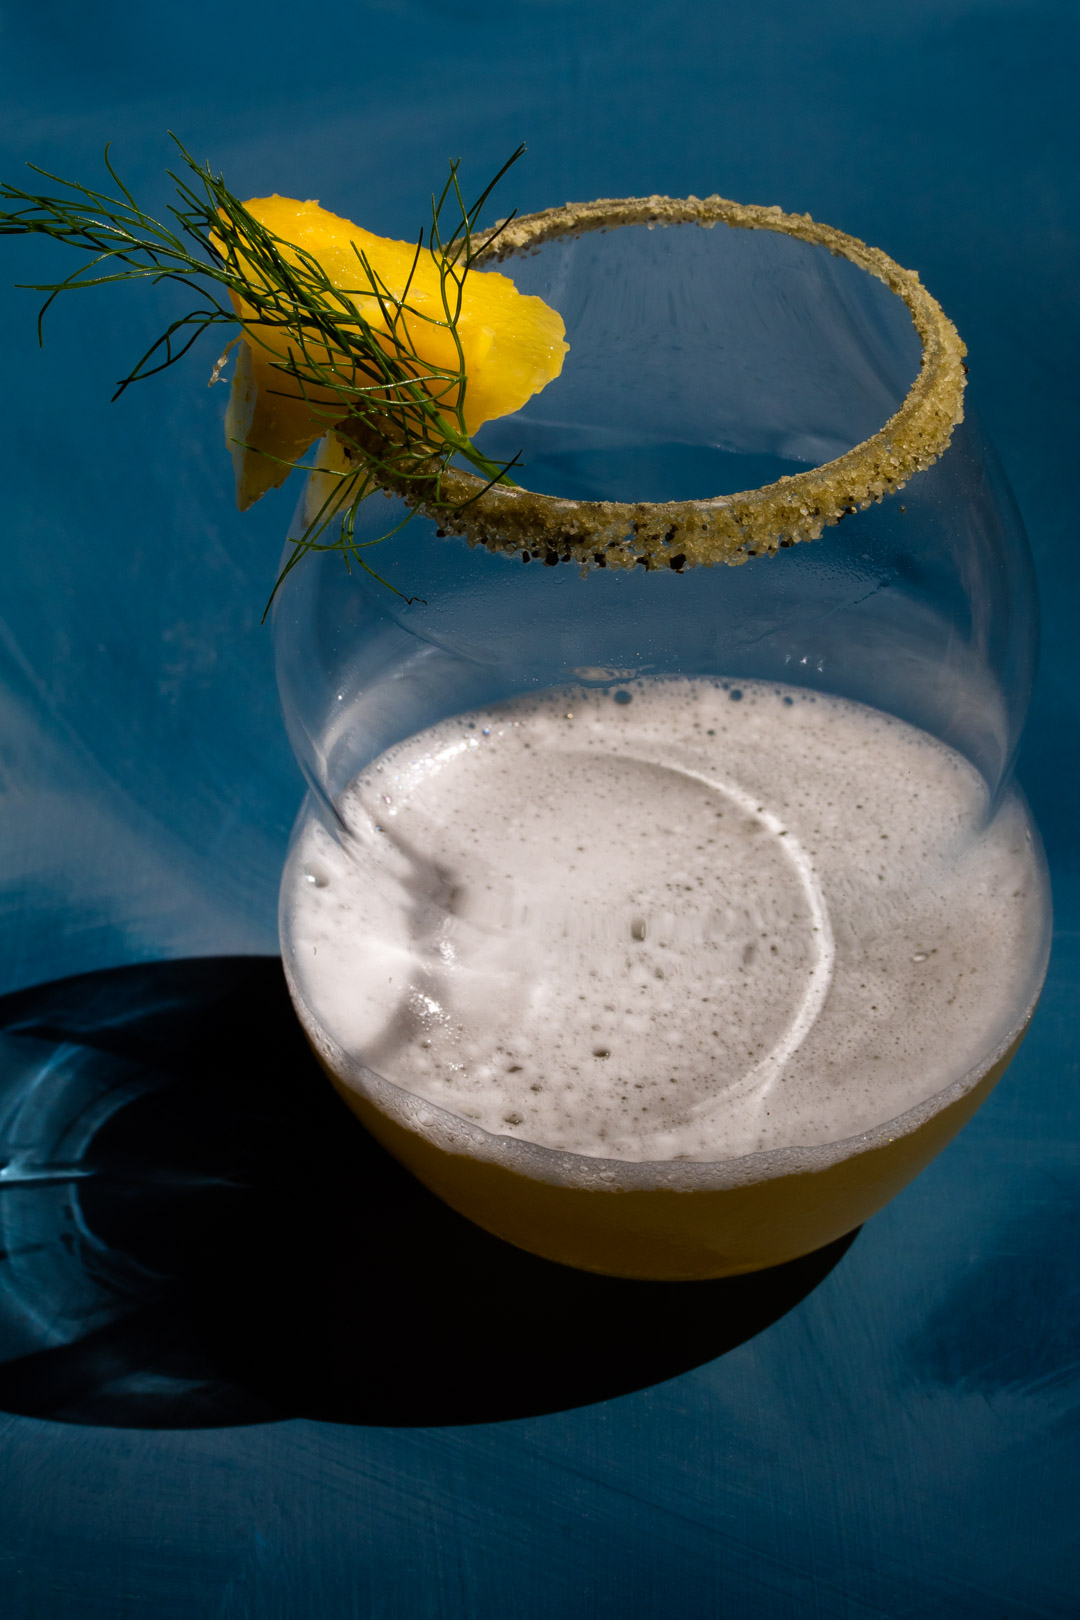 pineapple fennel shrub margarita cocktail isolated on blue background